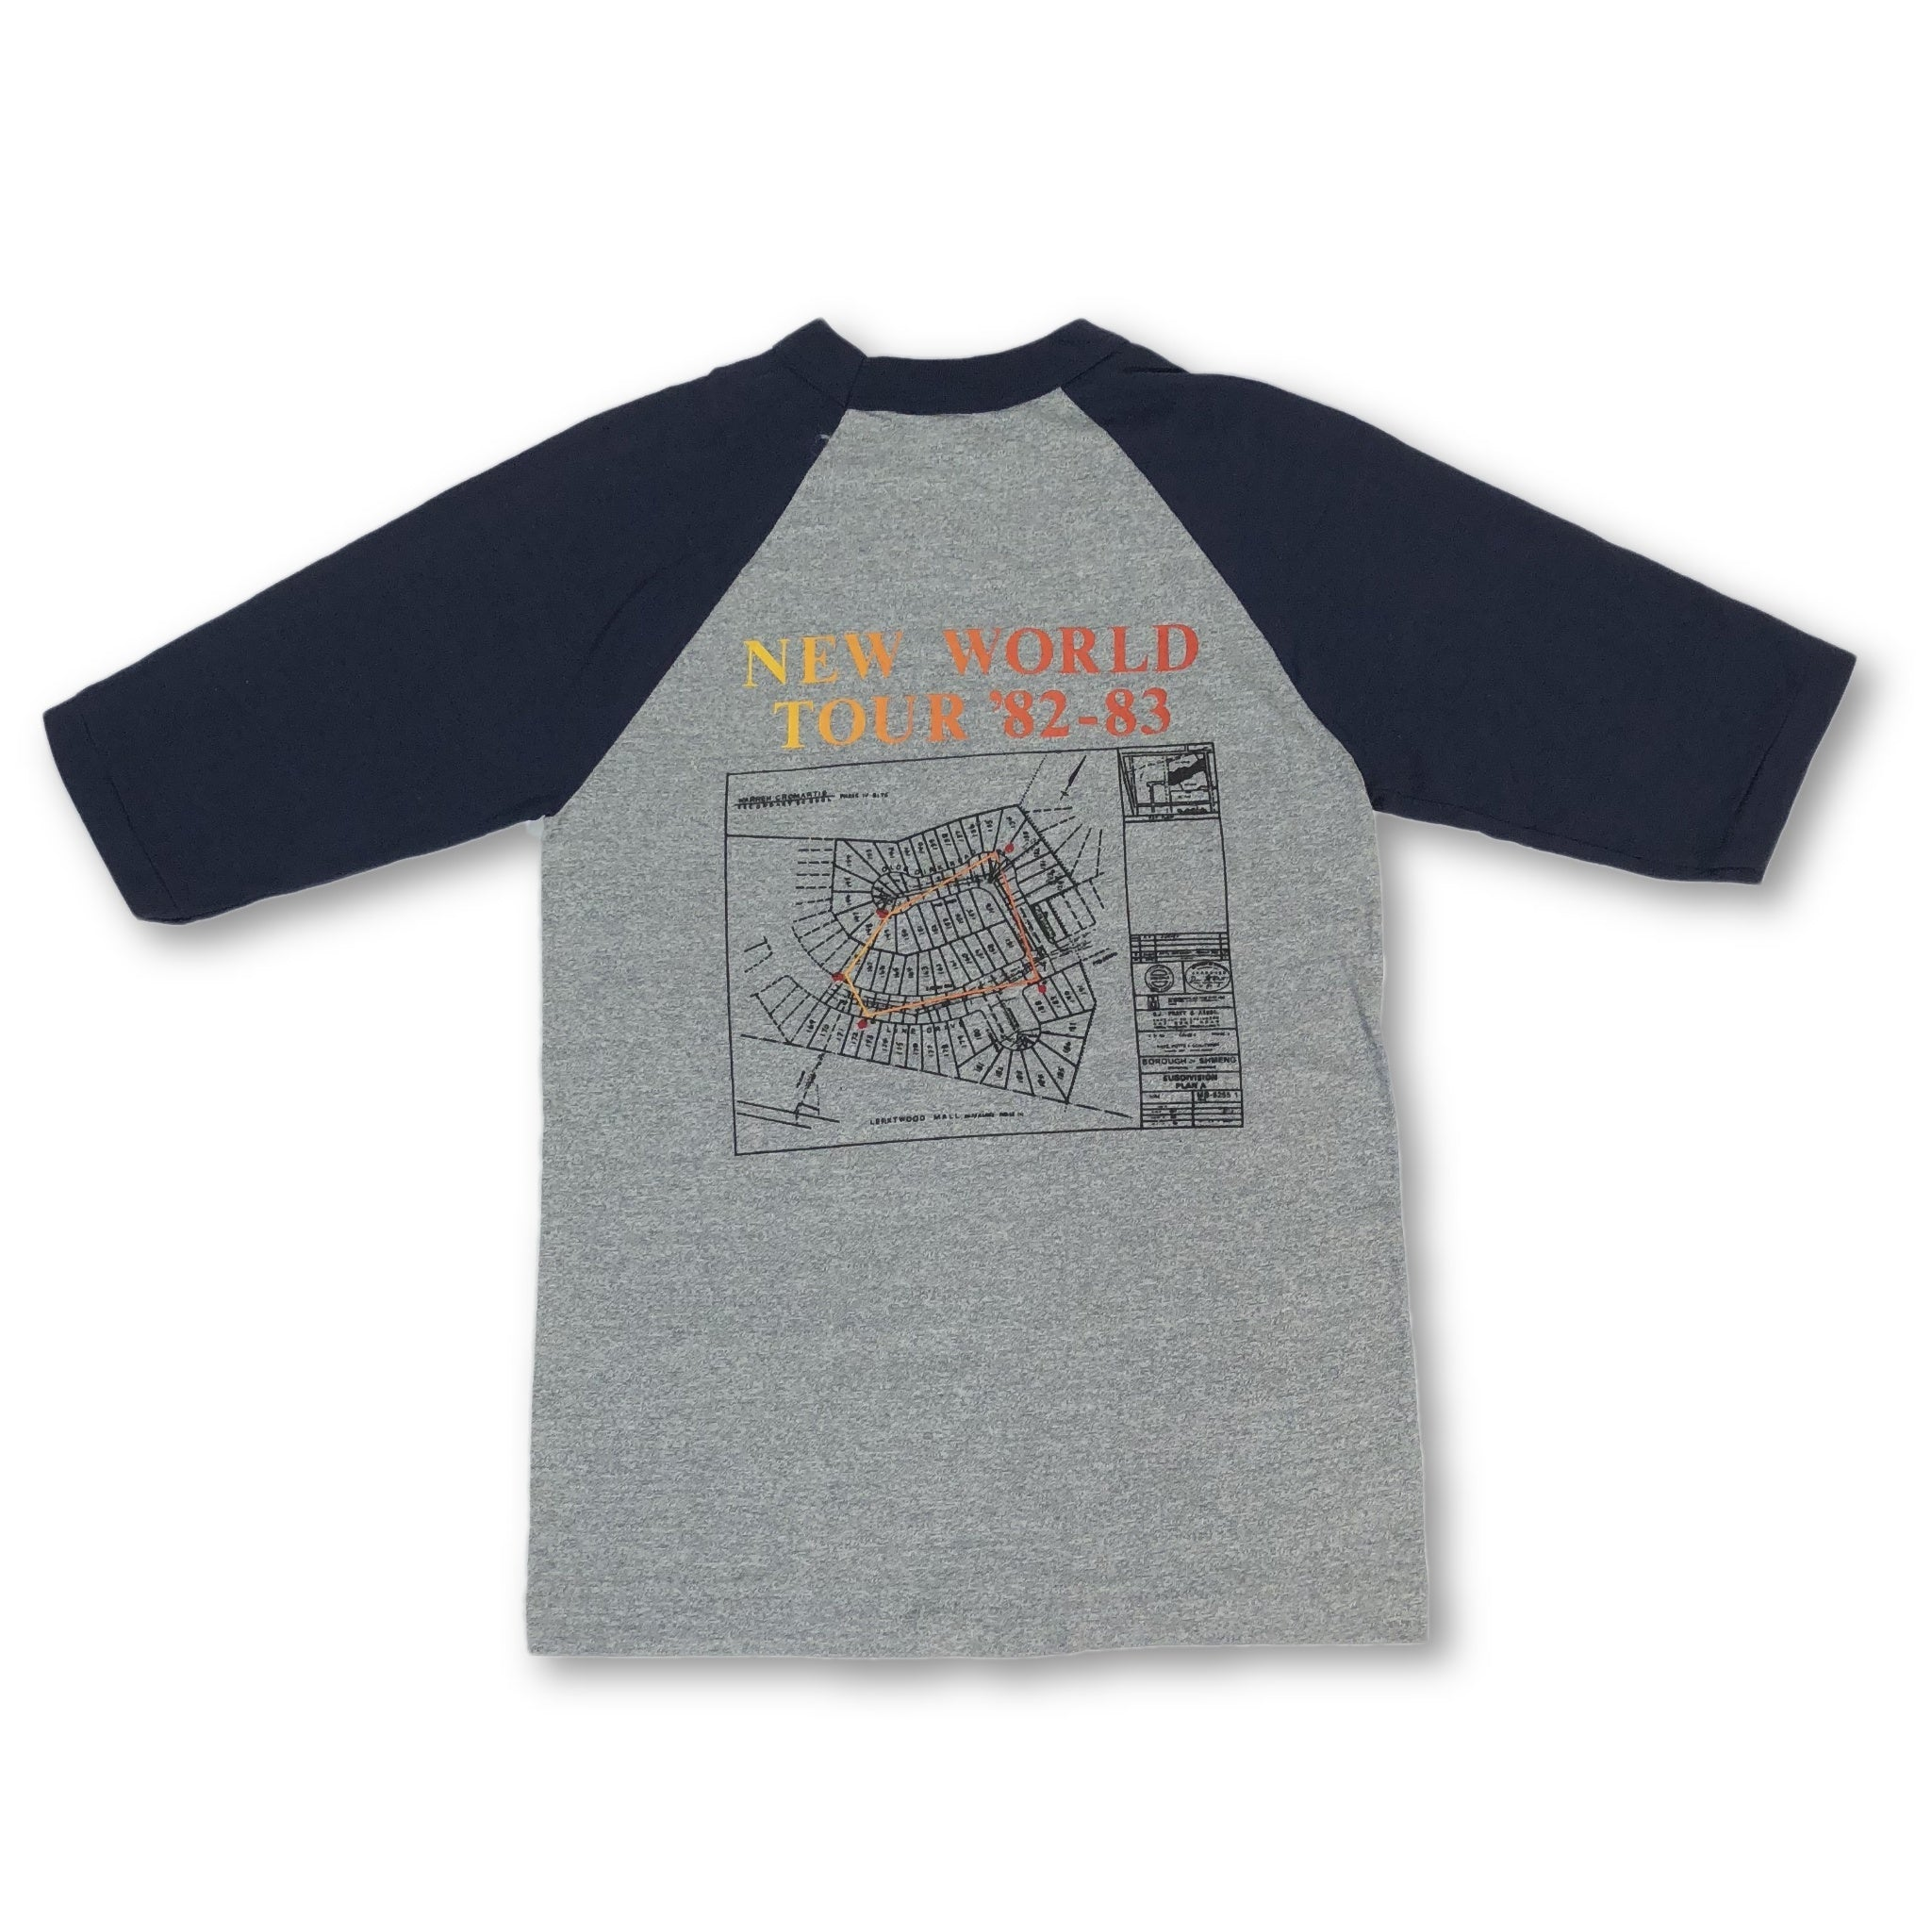 "Vintage Rush ""Signals New World Tour '82-83"" Raglan T-Shirt"